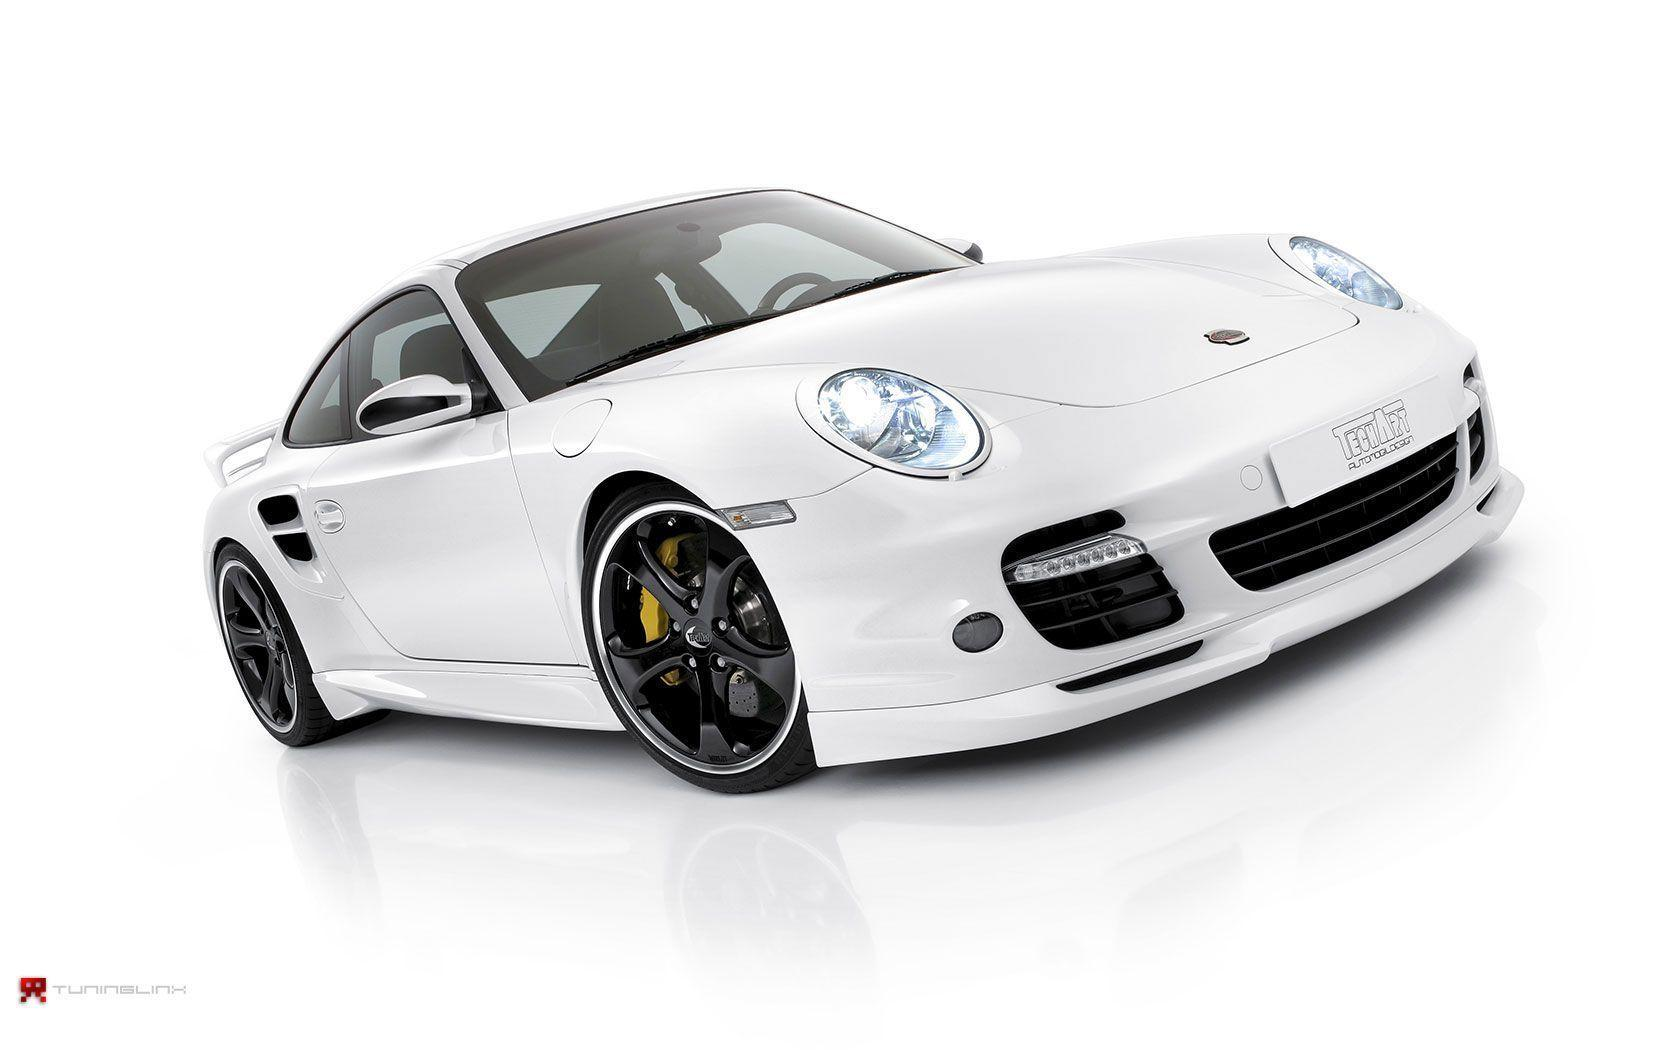 Porsche Cayman 981 Wallpaper · Porsche Wallpapers | Best Desktop ...